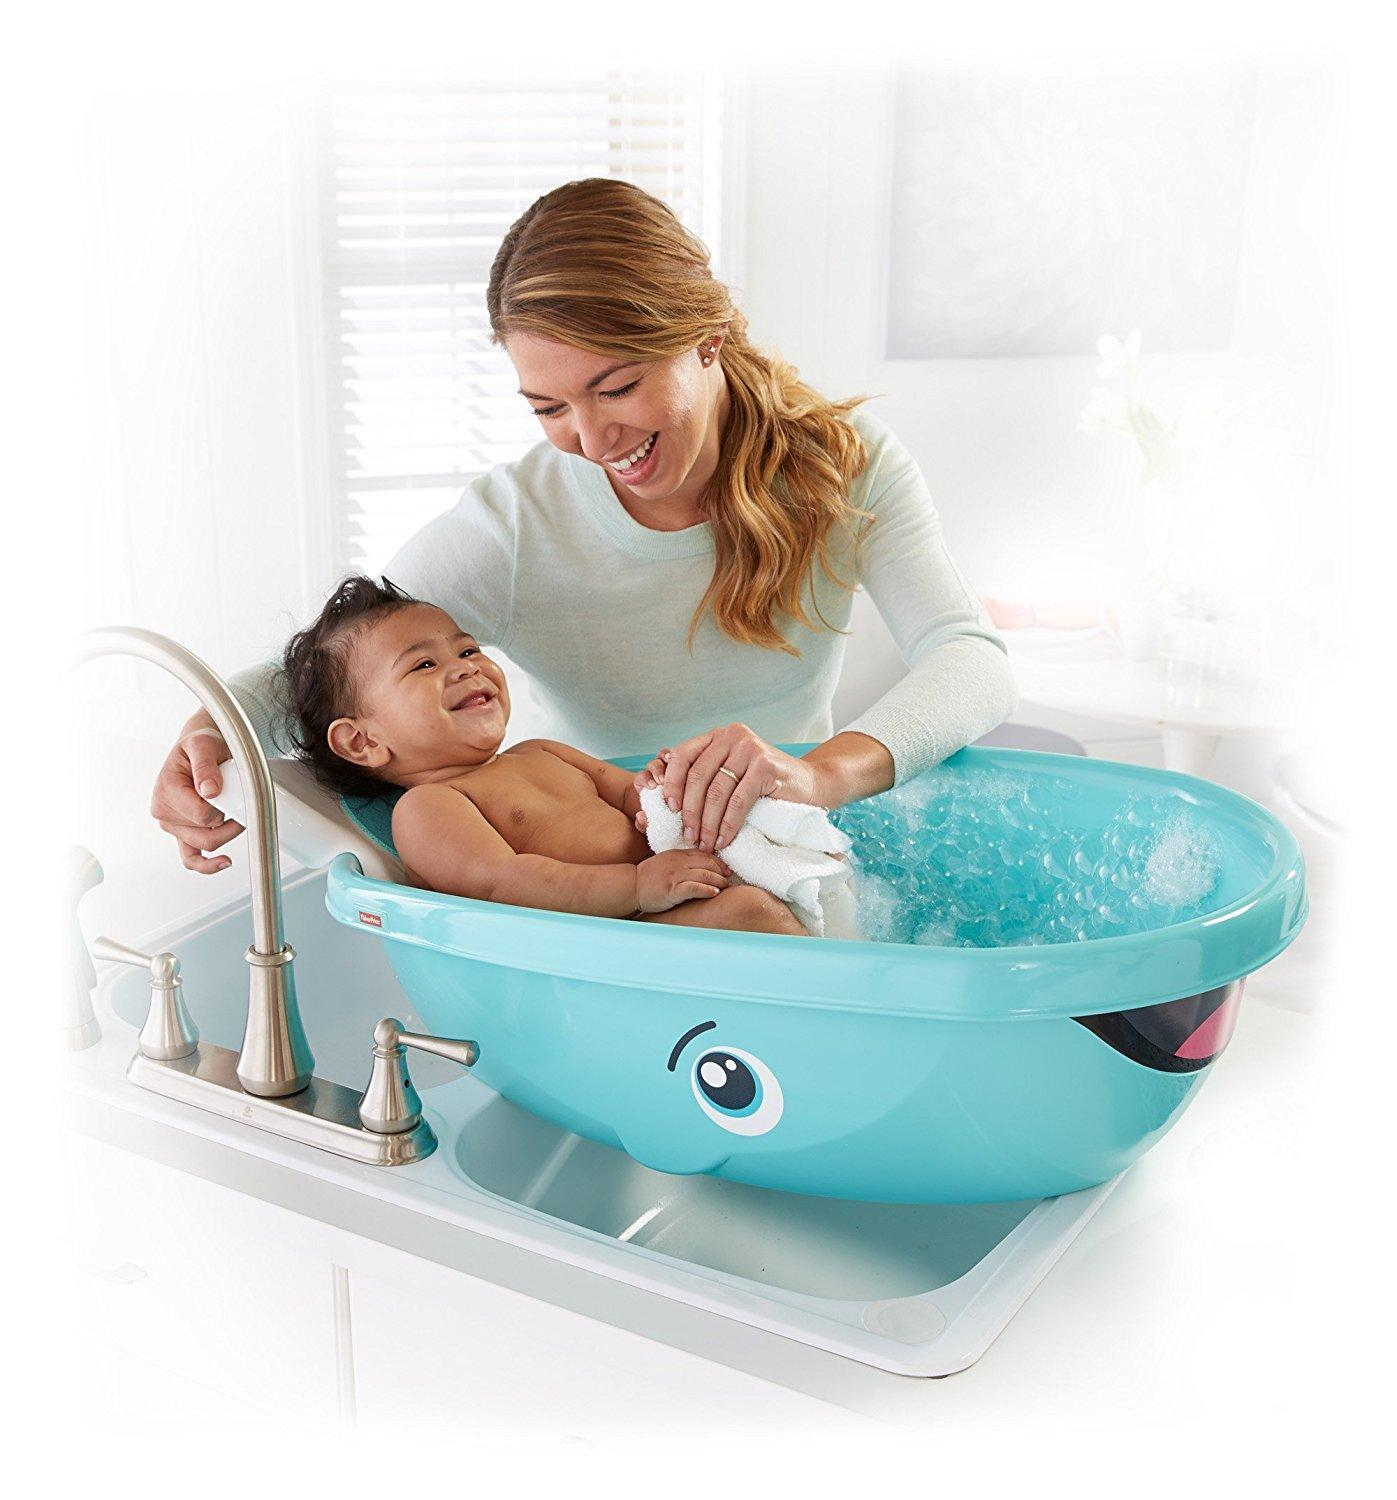 Amazon.com : Fisher-Price Whale Of A Tub Bathtub : Baby